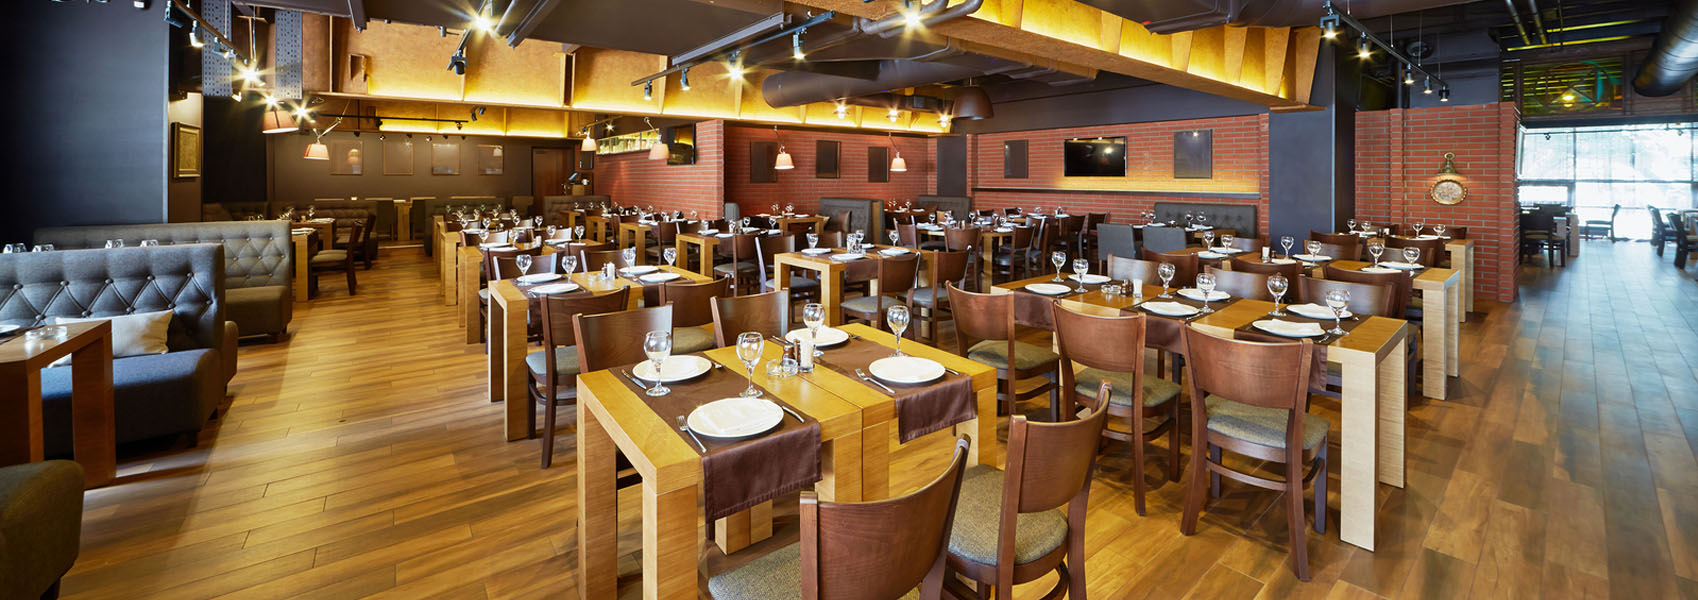 Clean Pro Restaurant and Bar Cleaning Services